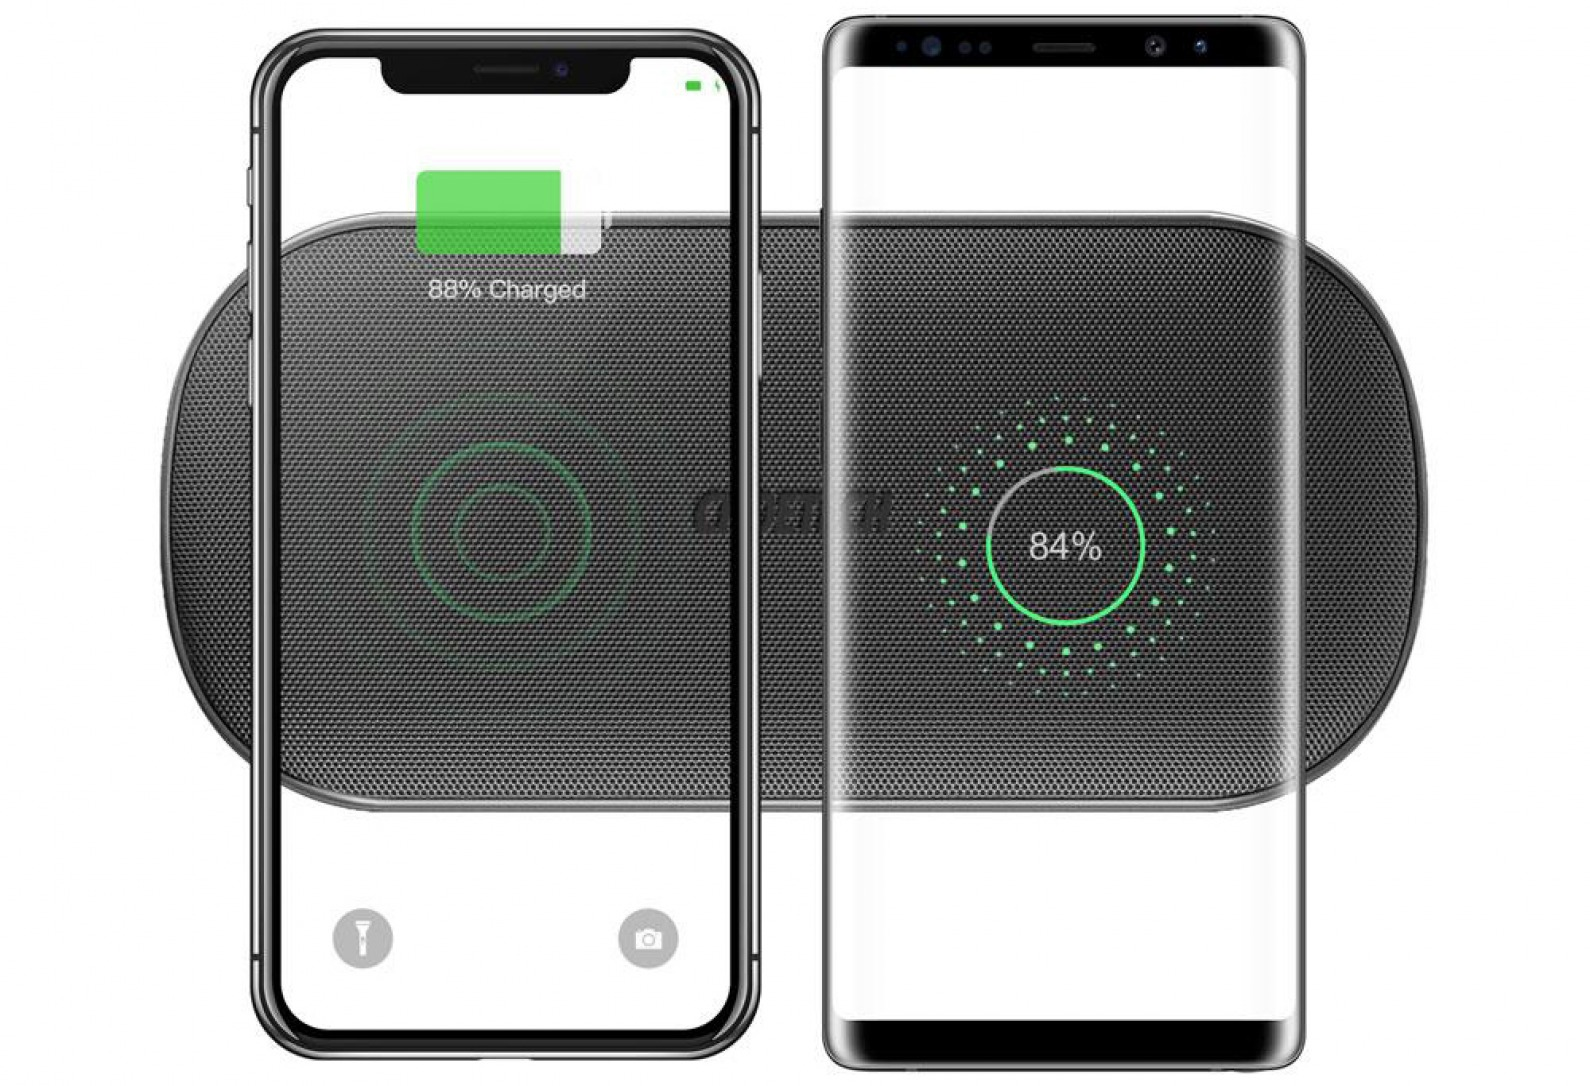 Review: Impressive 5-coil Qi Wireless Charging Pad from Choetech